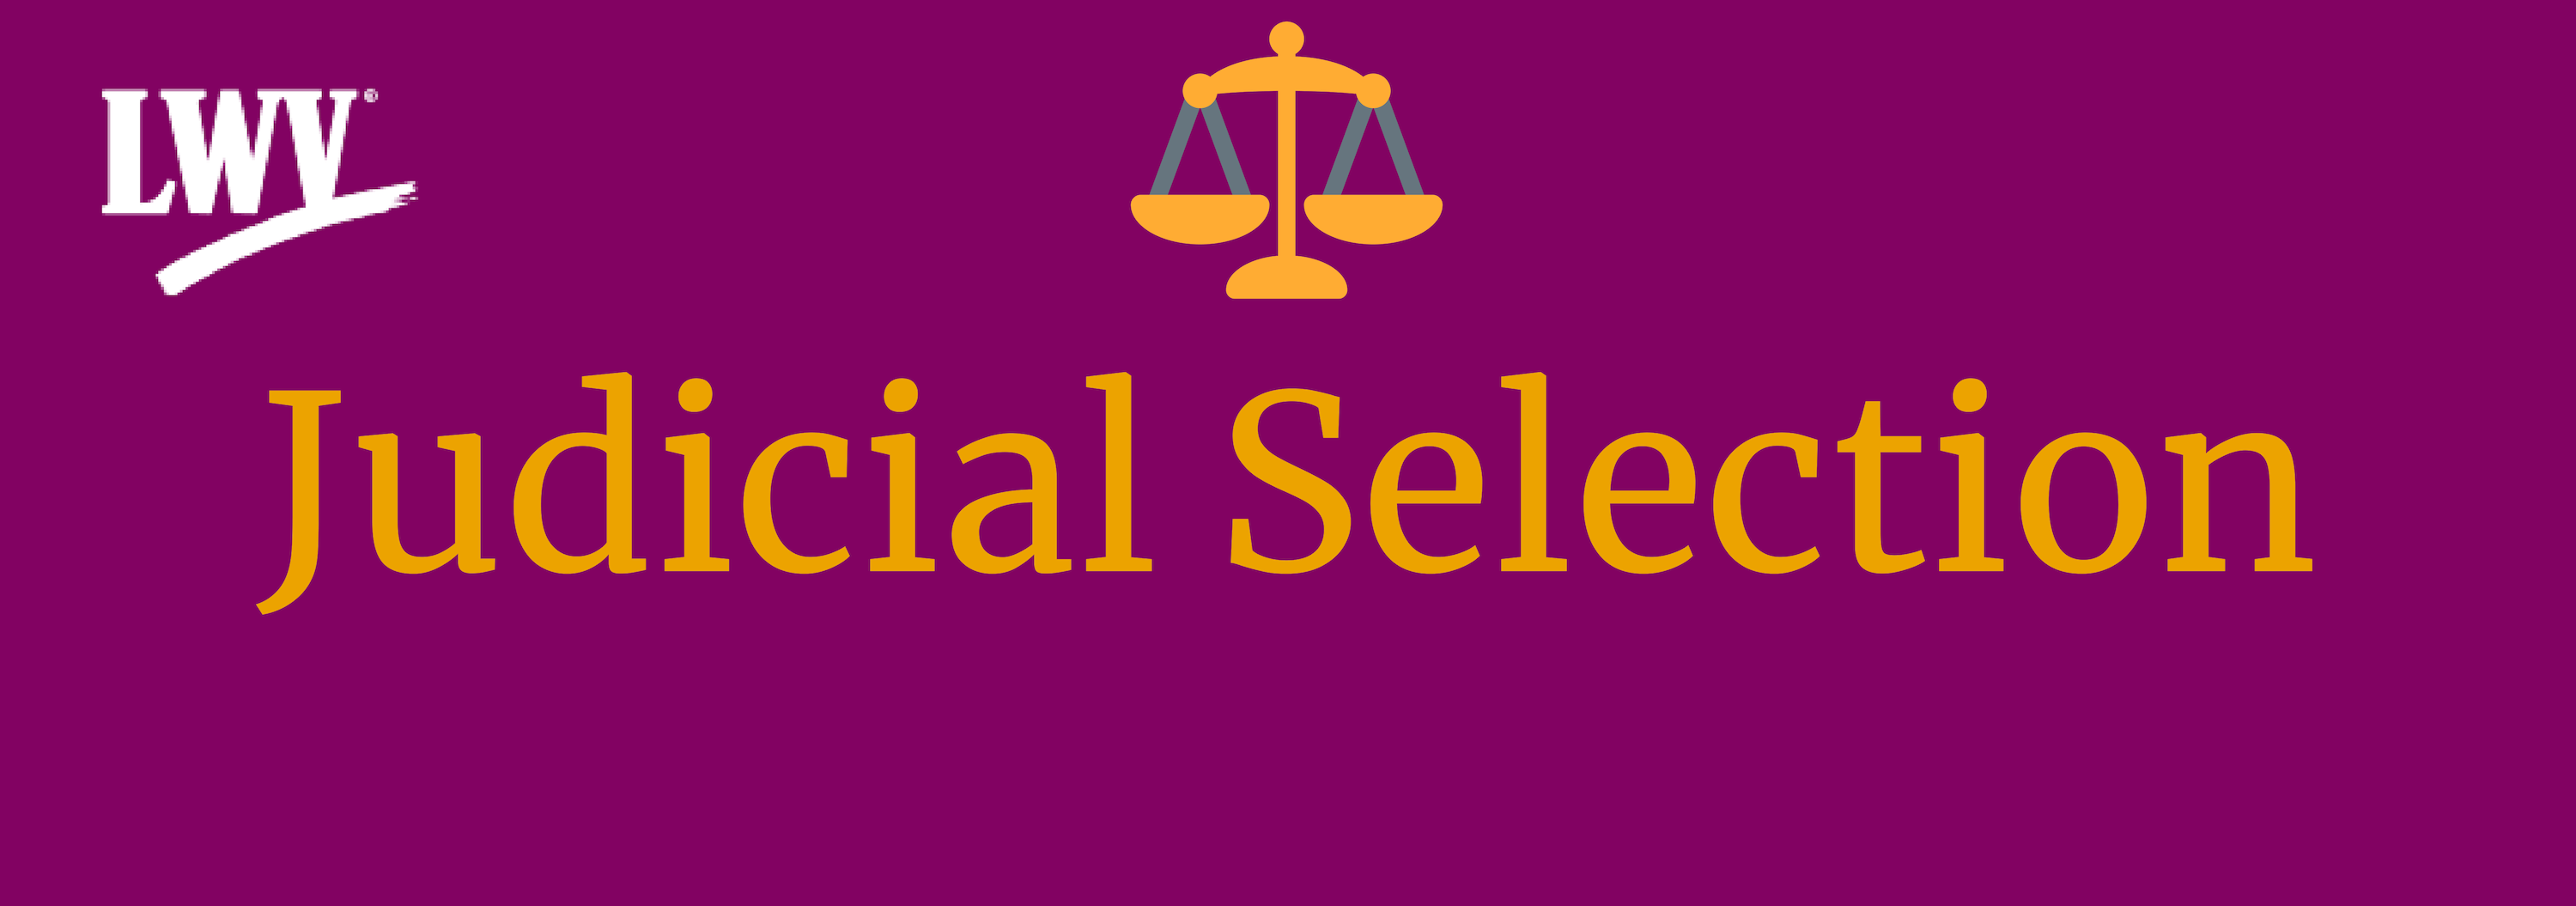 Judicial Selection with scales